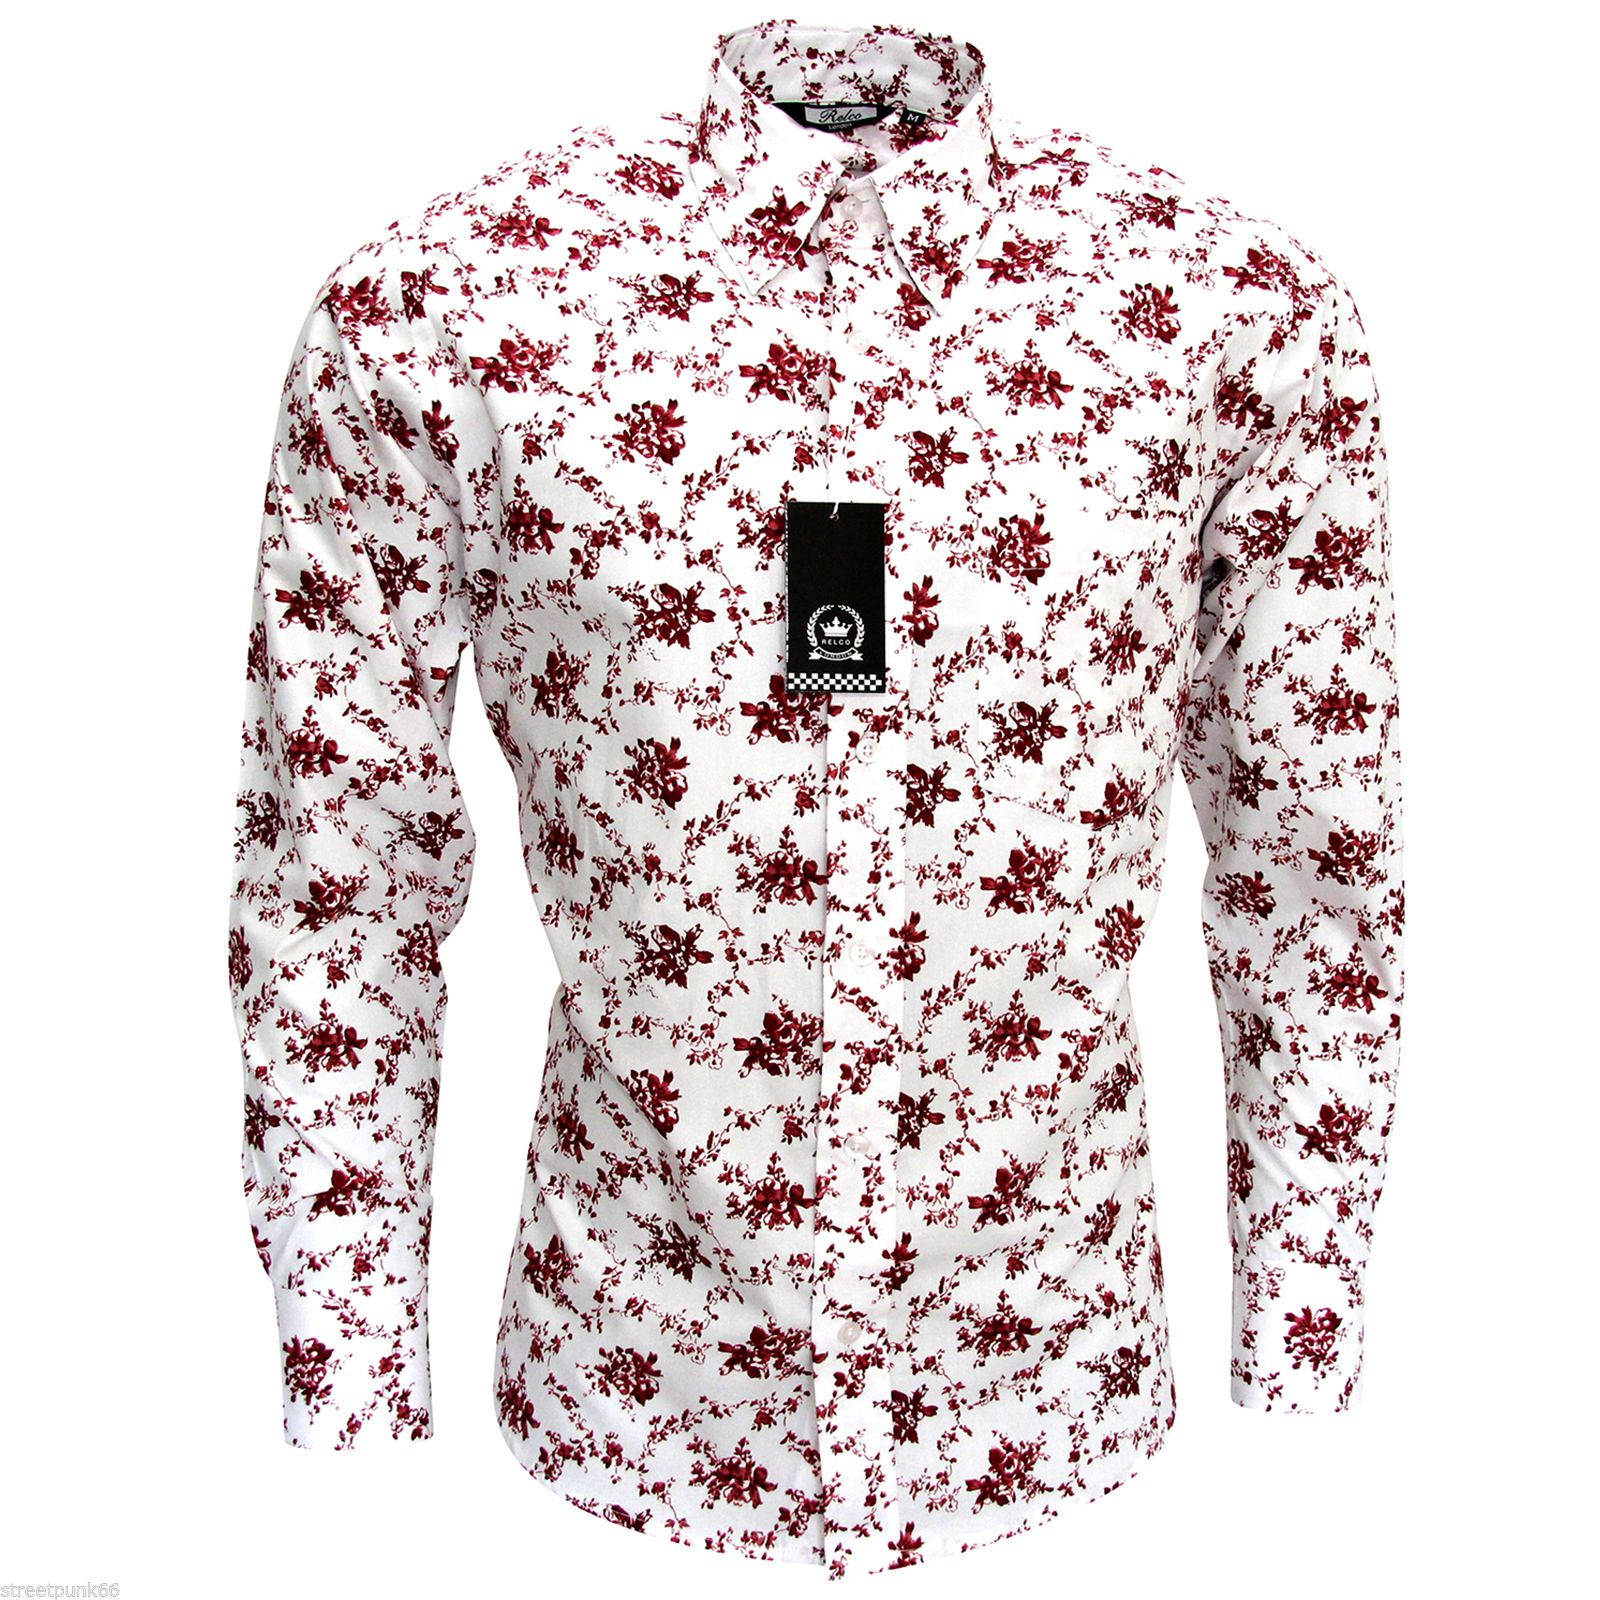 Relco mens white burgundy floral long sleeved shirt mod for Mens white floral shirt